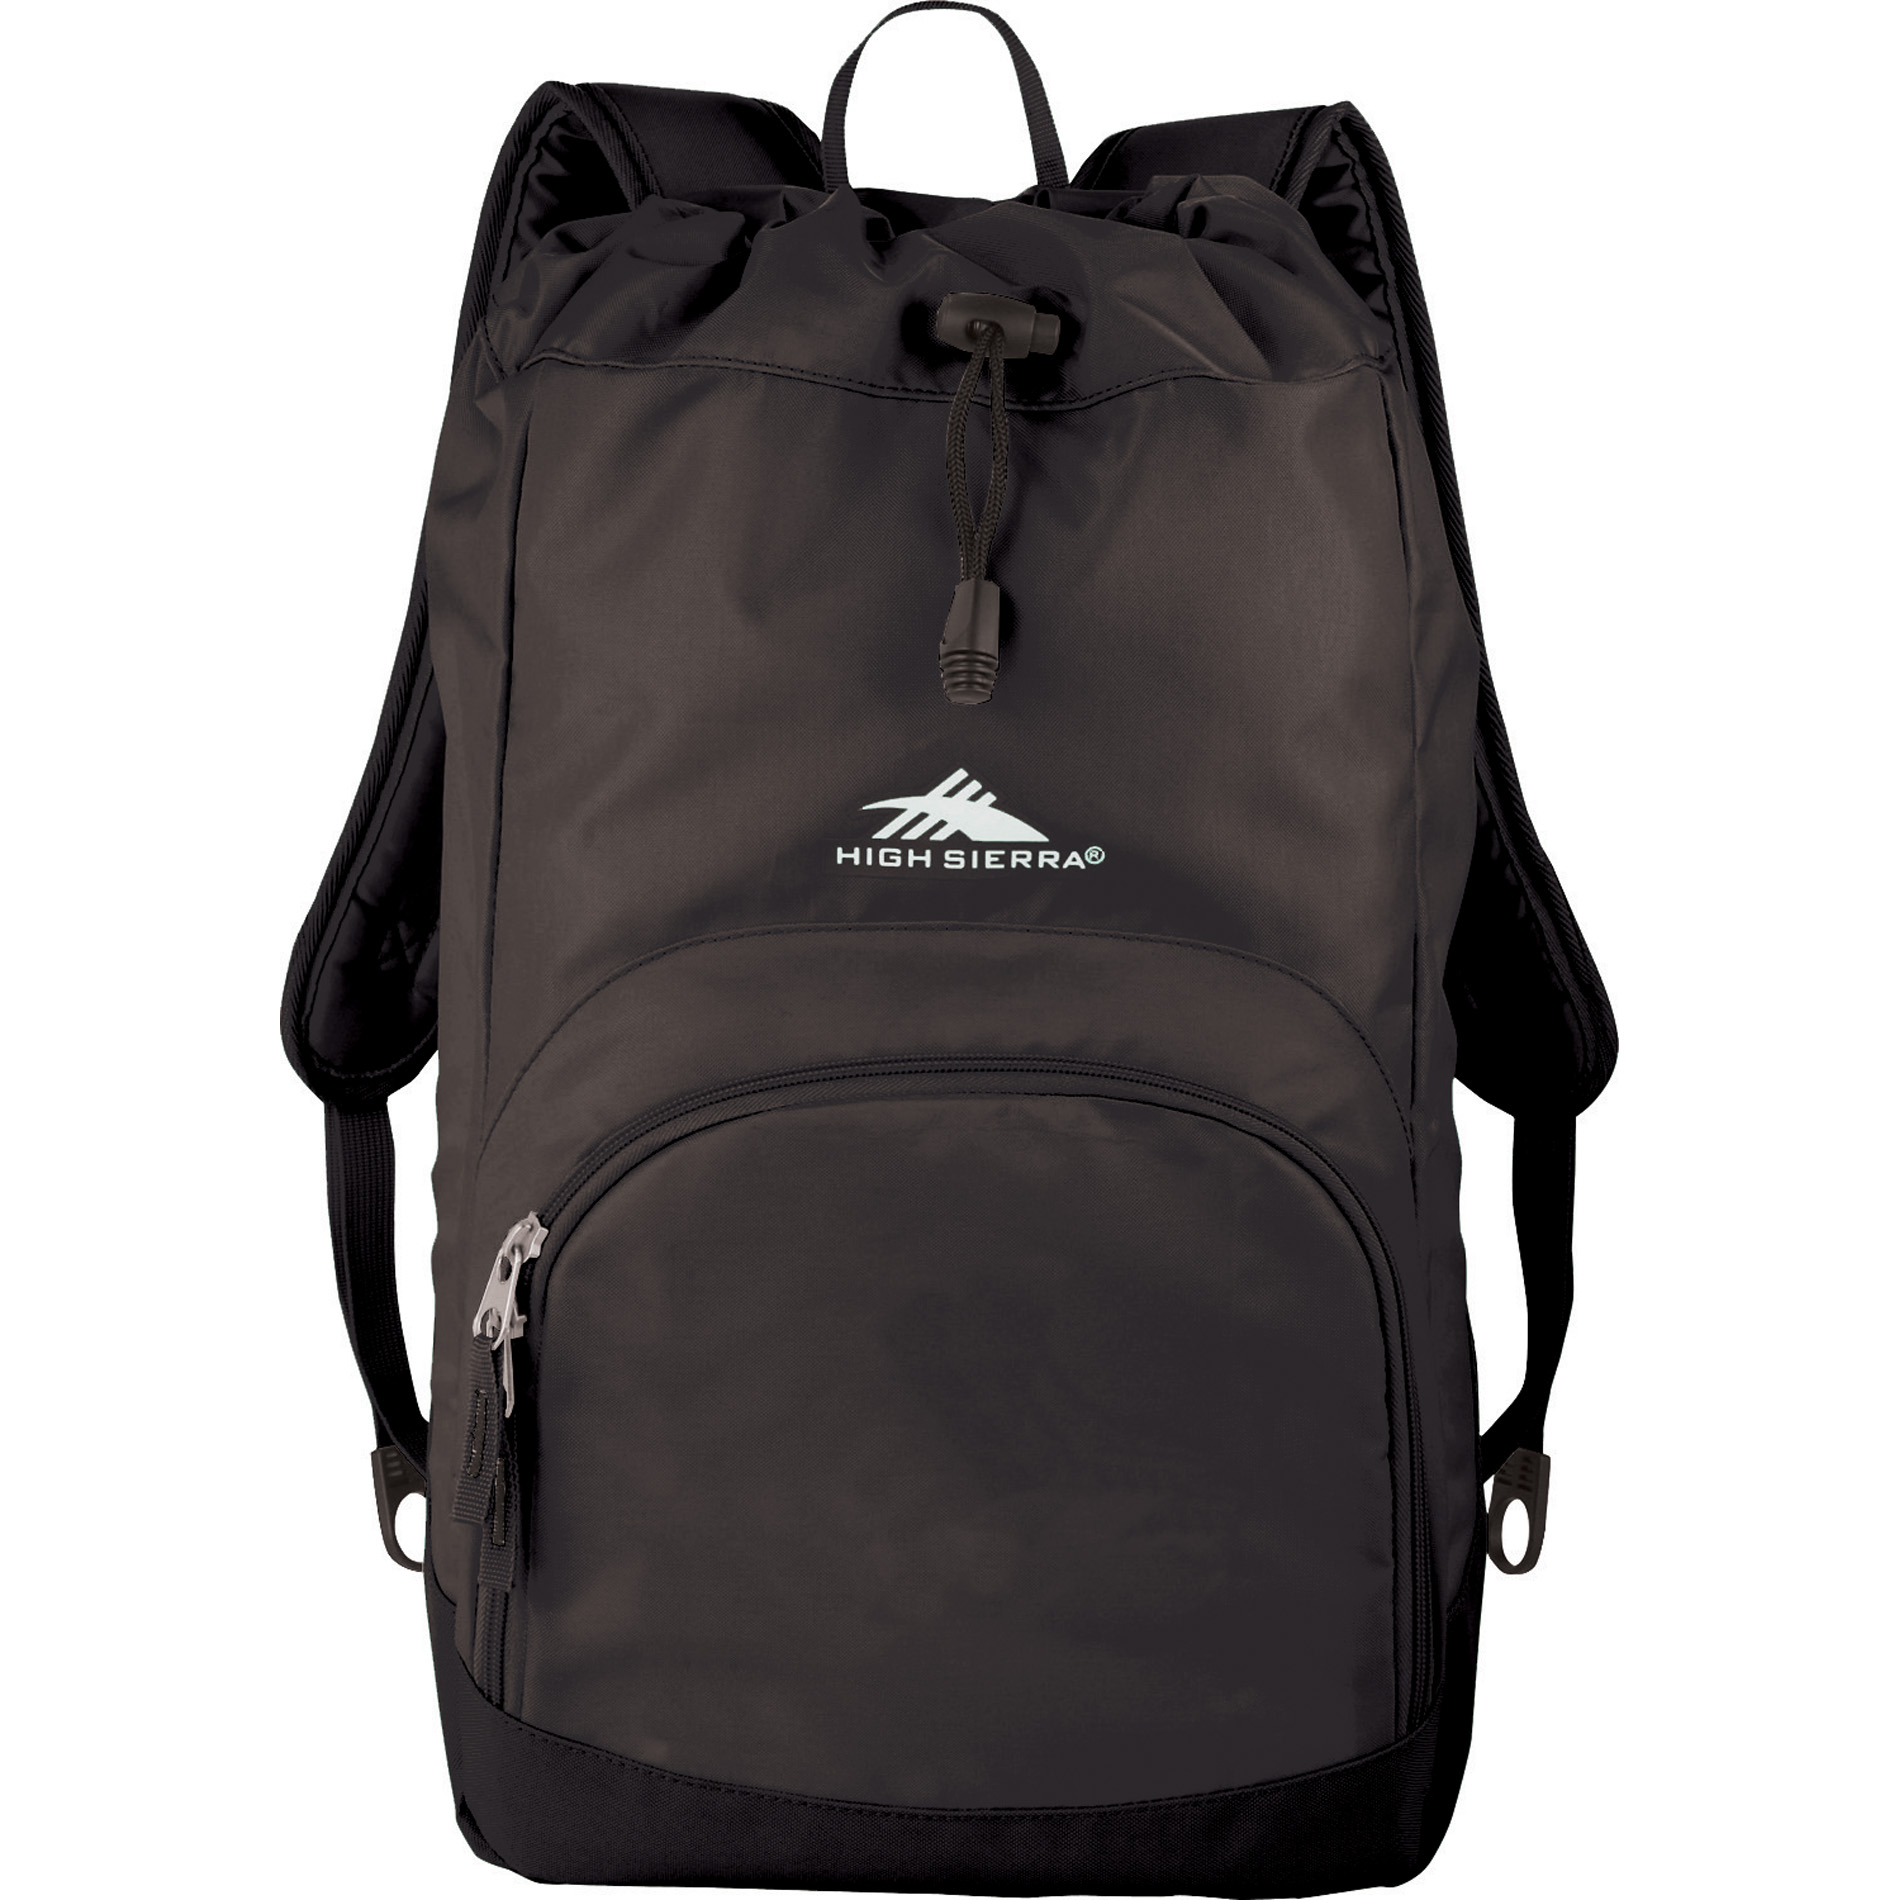 High Sierra 8051-52 - Synch Backpack